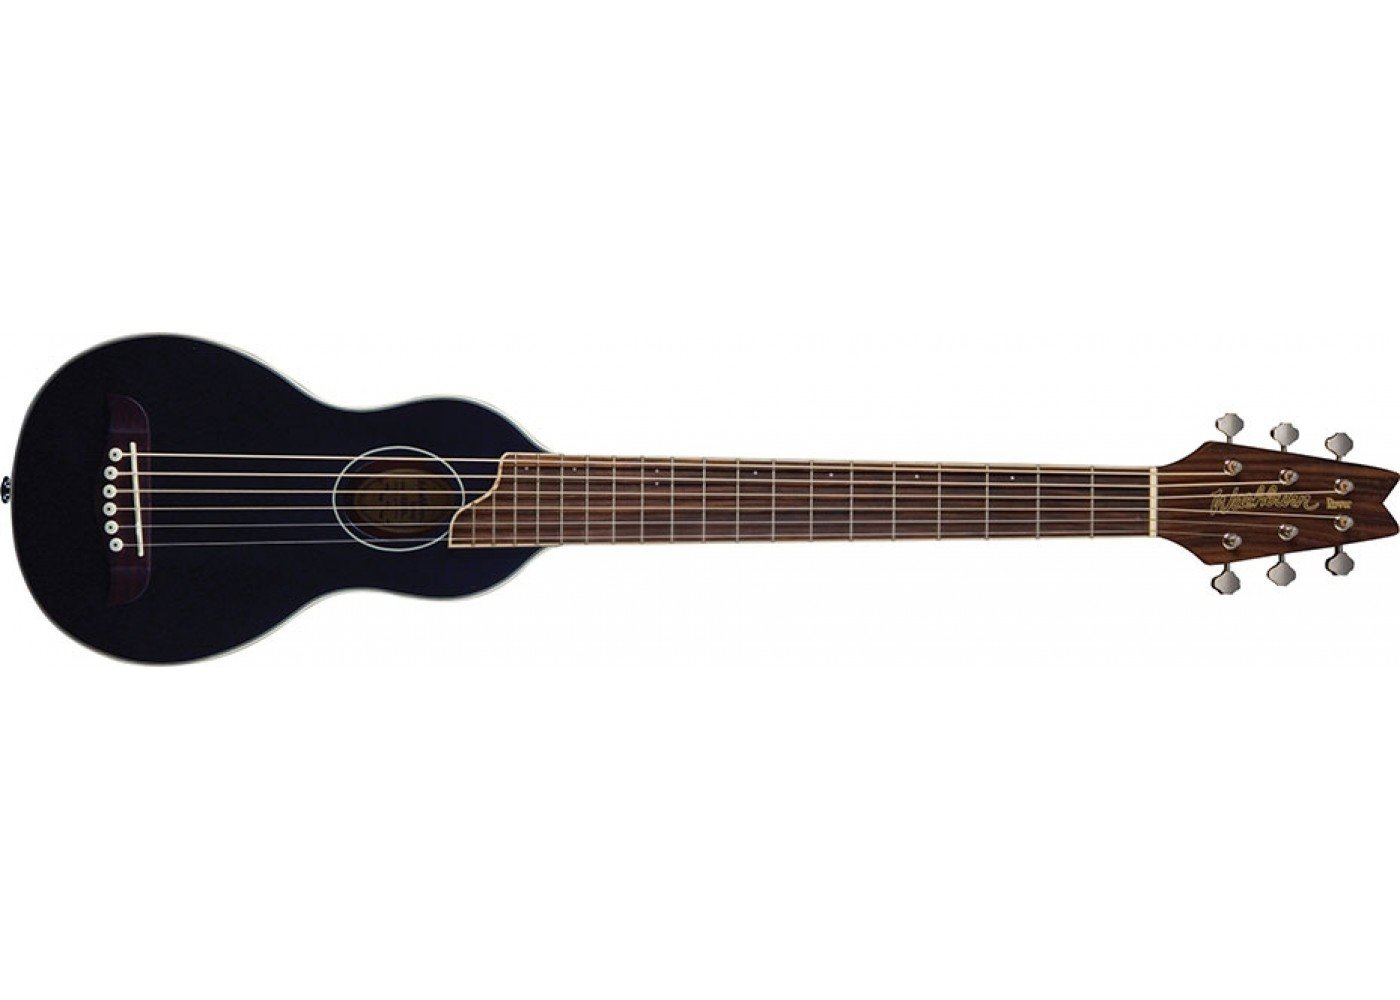 Washburn RO10B Rover Steel String Travel Acoustic Guitar - Black